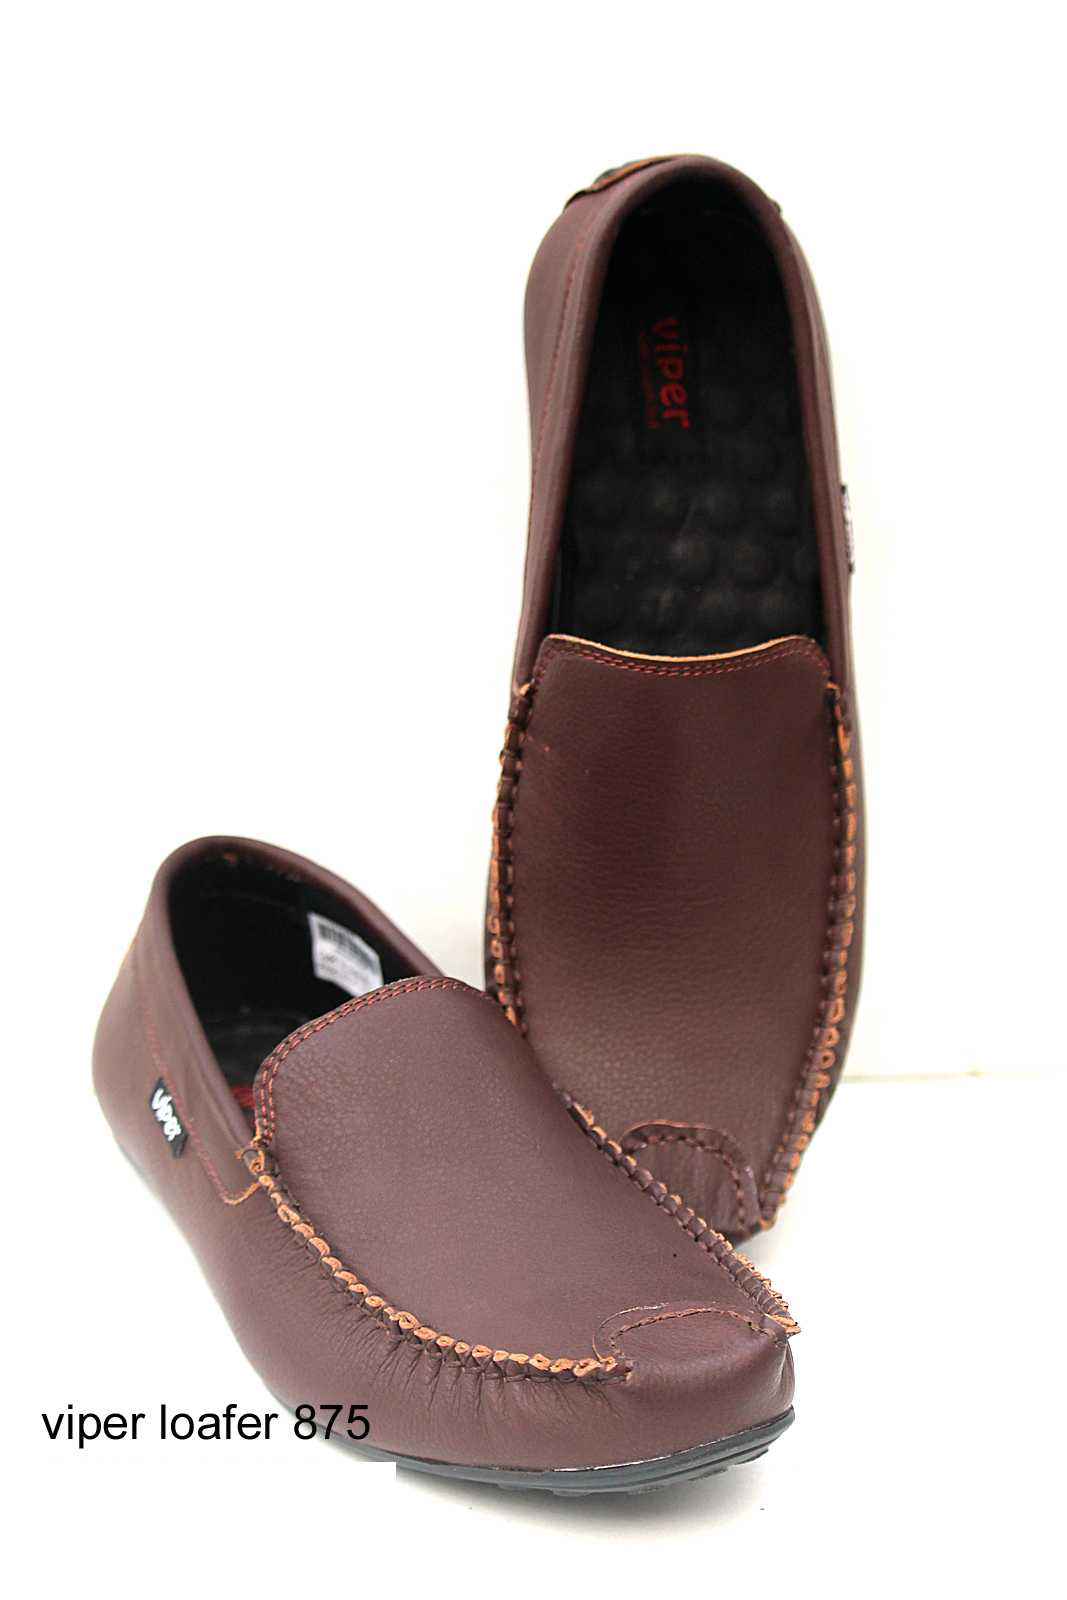 Smart Premium Loafer 875- Product-GC 201